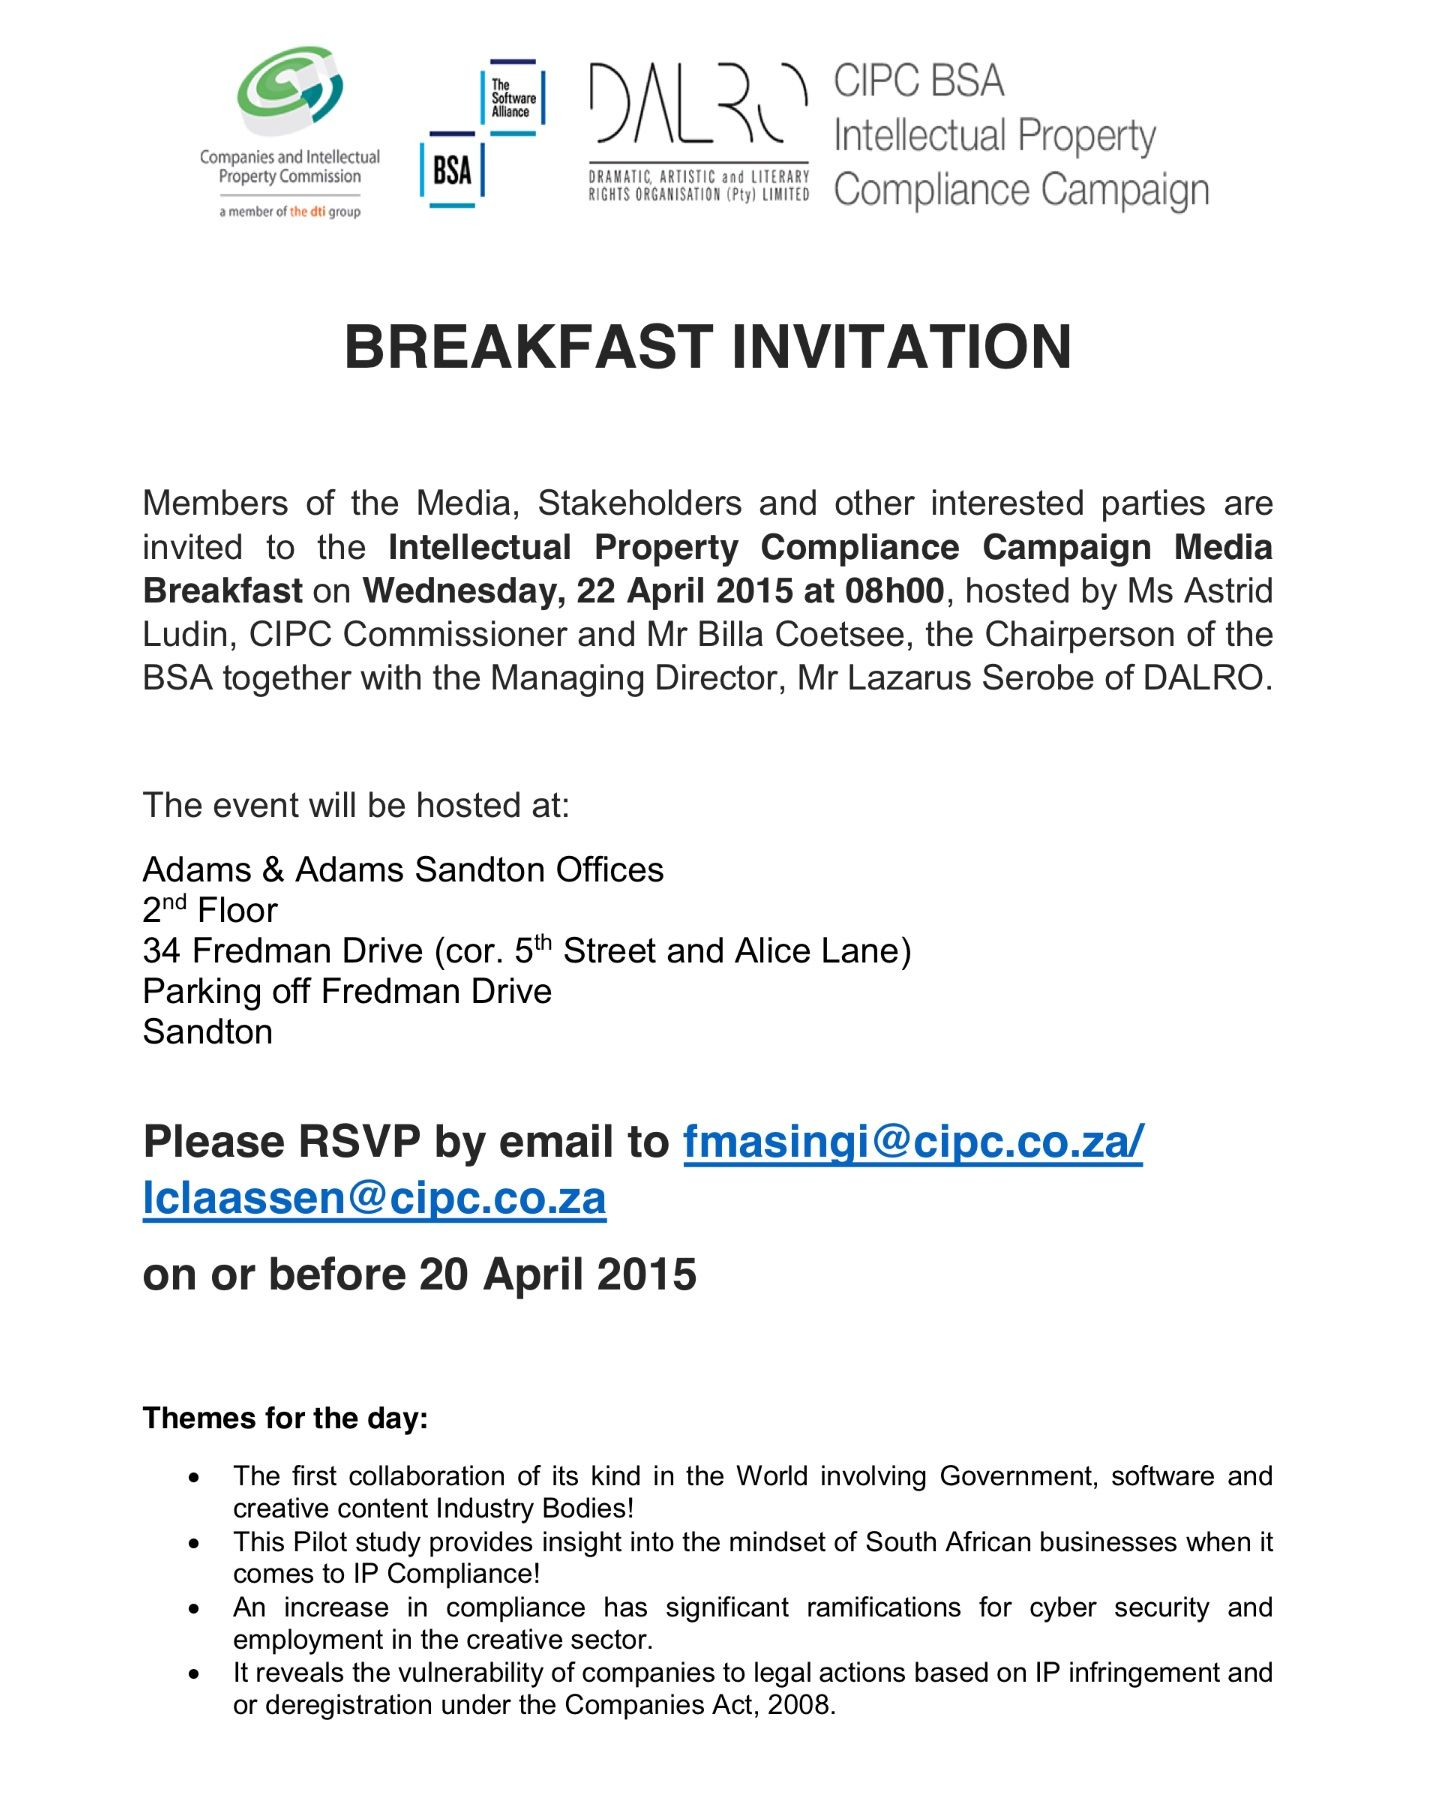 Intellectual Property Compliance Campaign Media Breakfast Invitation